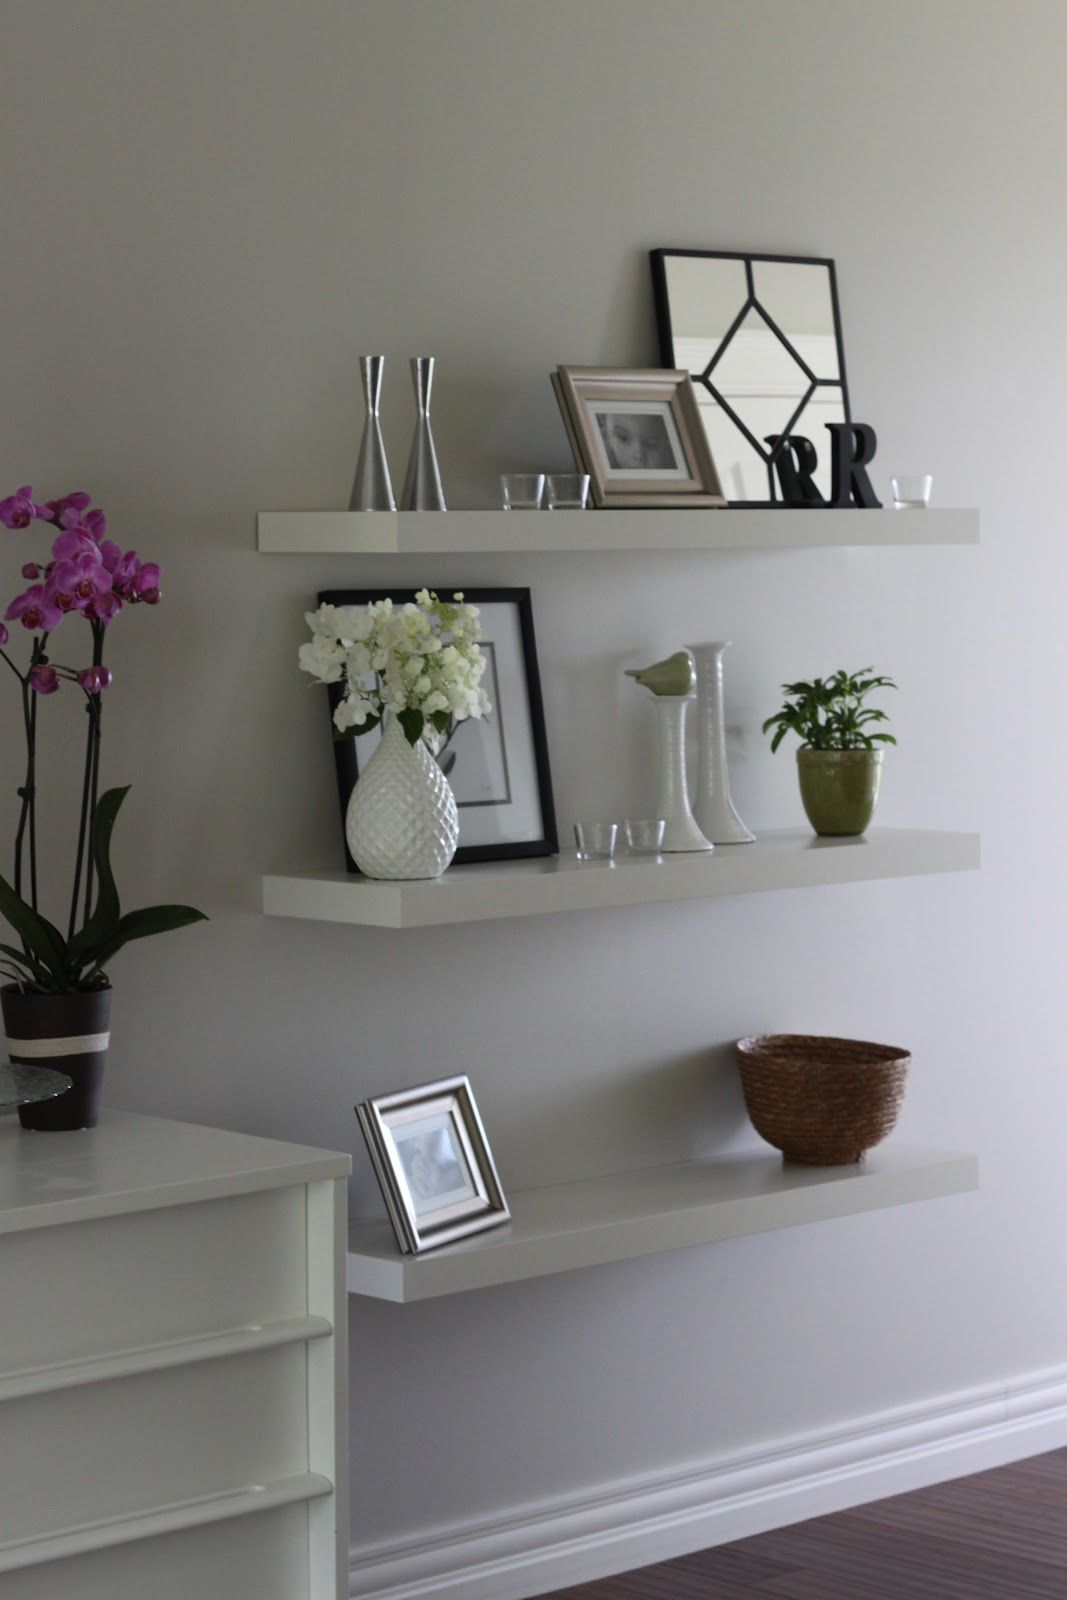 Dining Room Shelf Ideas Floating Shelves To Fill An Empty Space Kristen Kluk